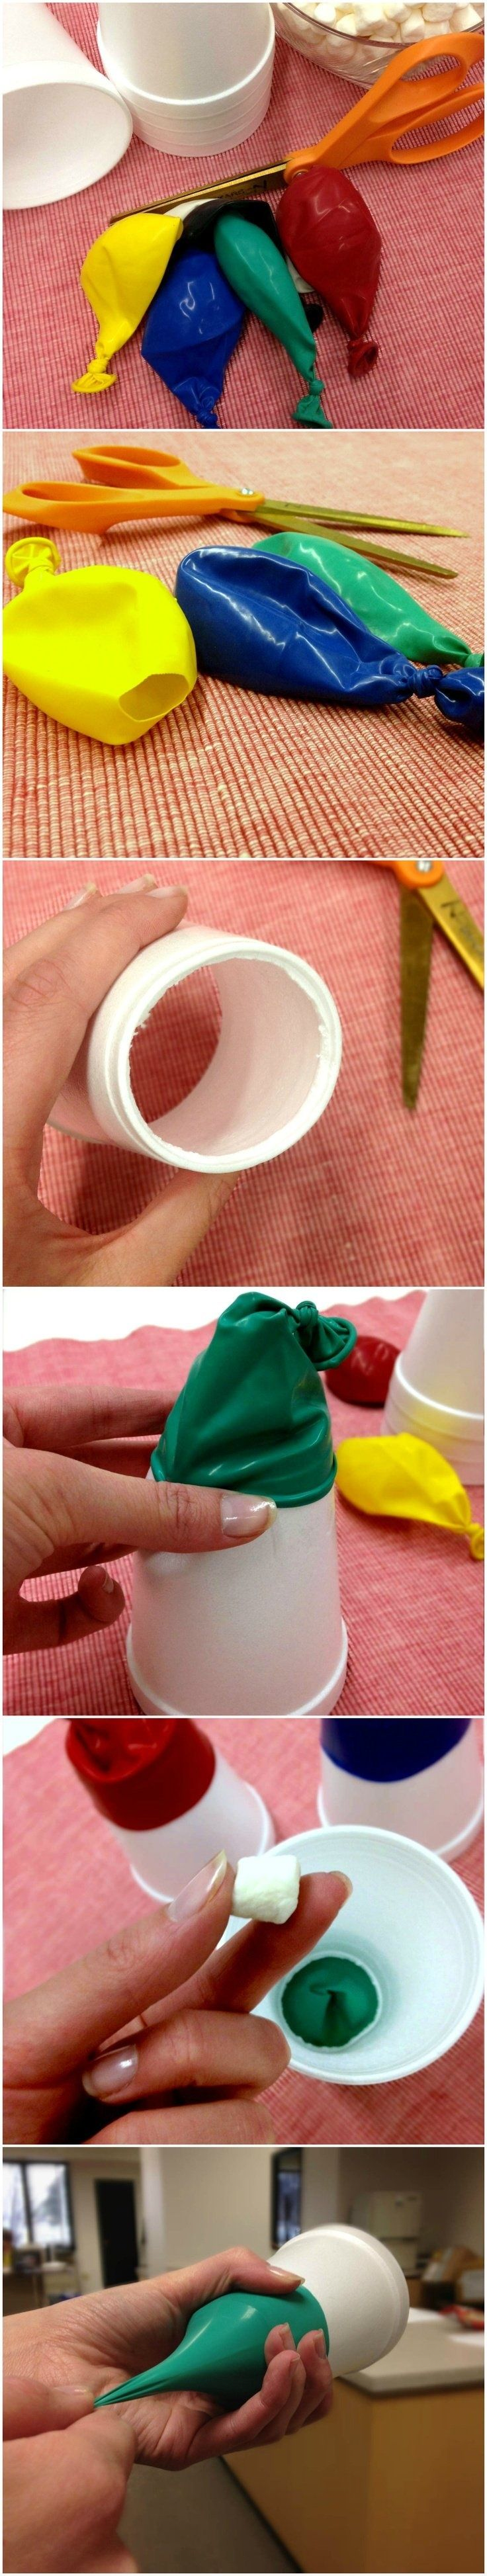 Create Marshmallow Shooters with your team! See who has the best aim by challenging teammates to fire marshmallows at targets or through hoops. Repinned by CAPA www.capacares.org